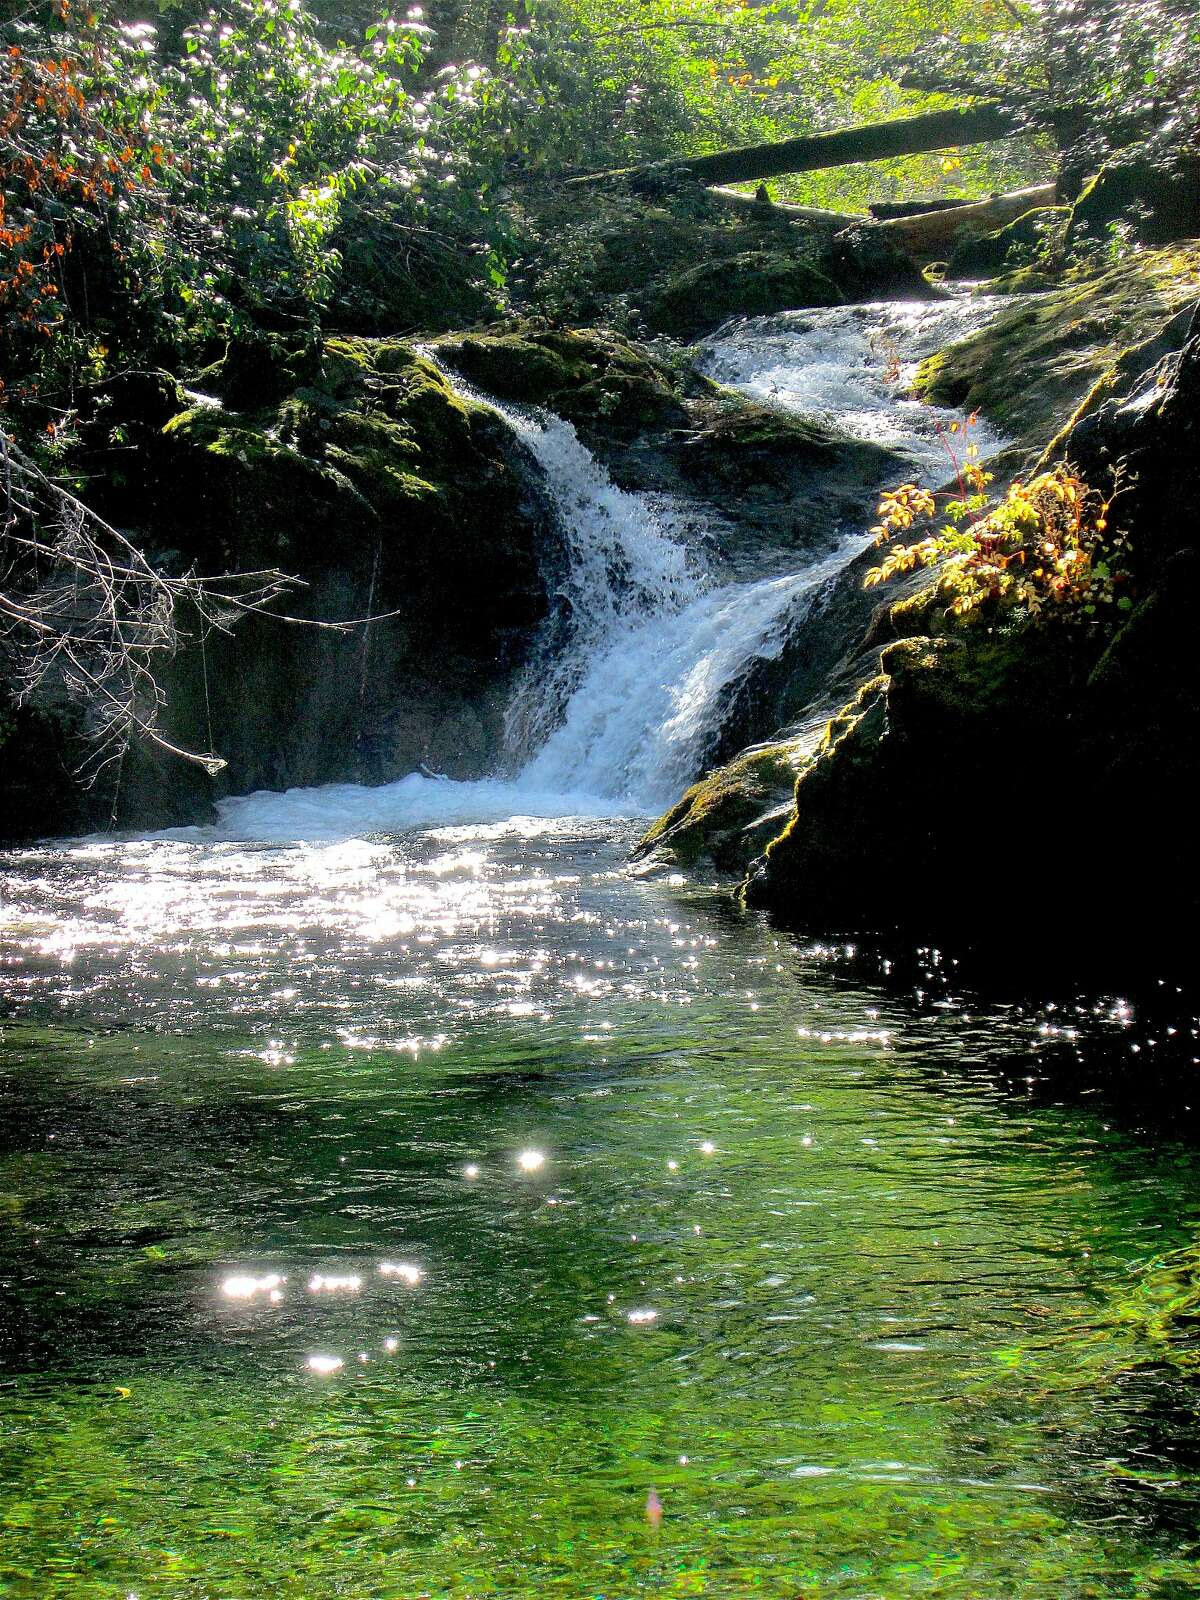 Buck Creek pours crystal-pure freshwater as a tributary into the Smith River on the South Kelsey Trail in the Smith River National Recreation Area, located in Northern California